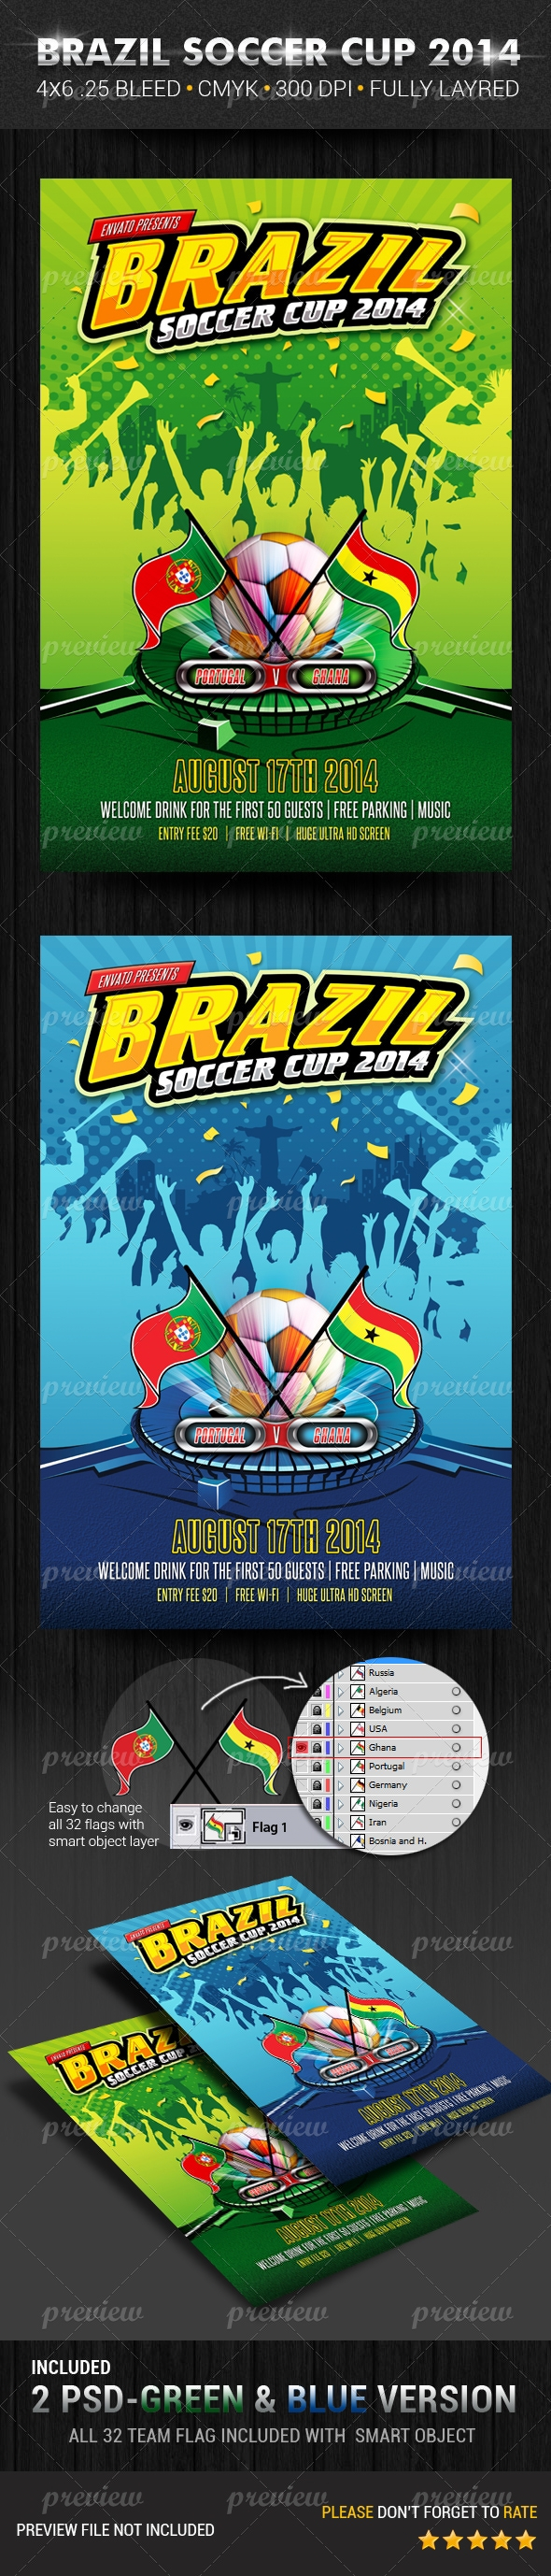 Brazil Soccer Cup Flyer Template by Pushpalata Pradhan